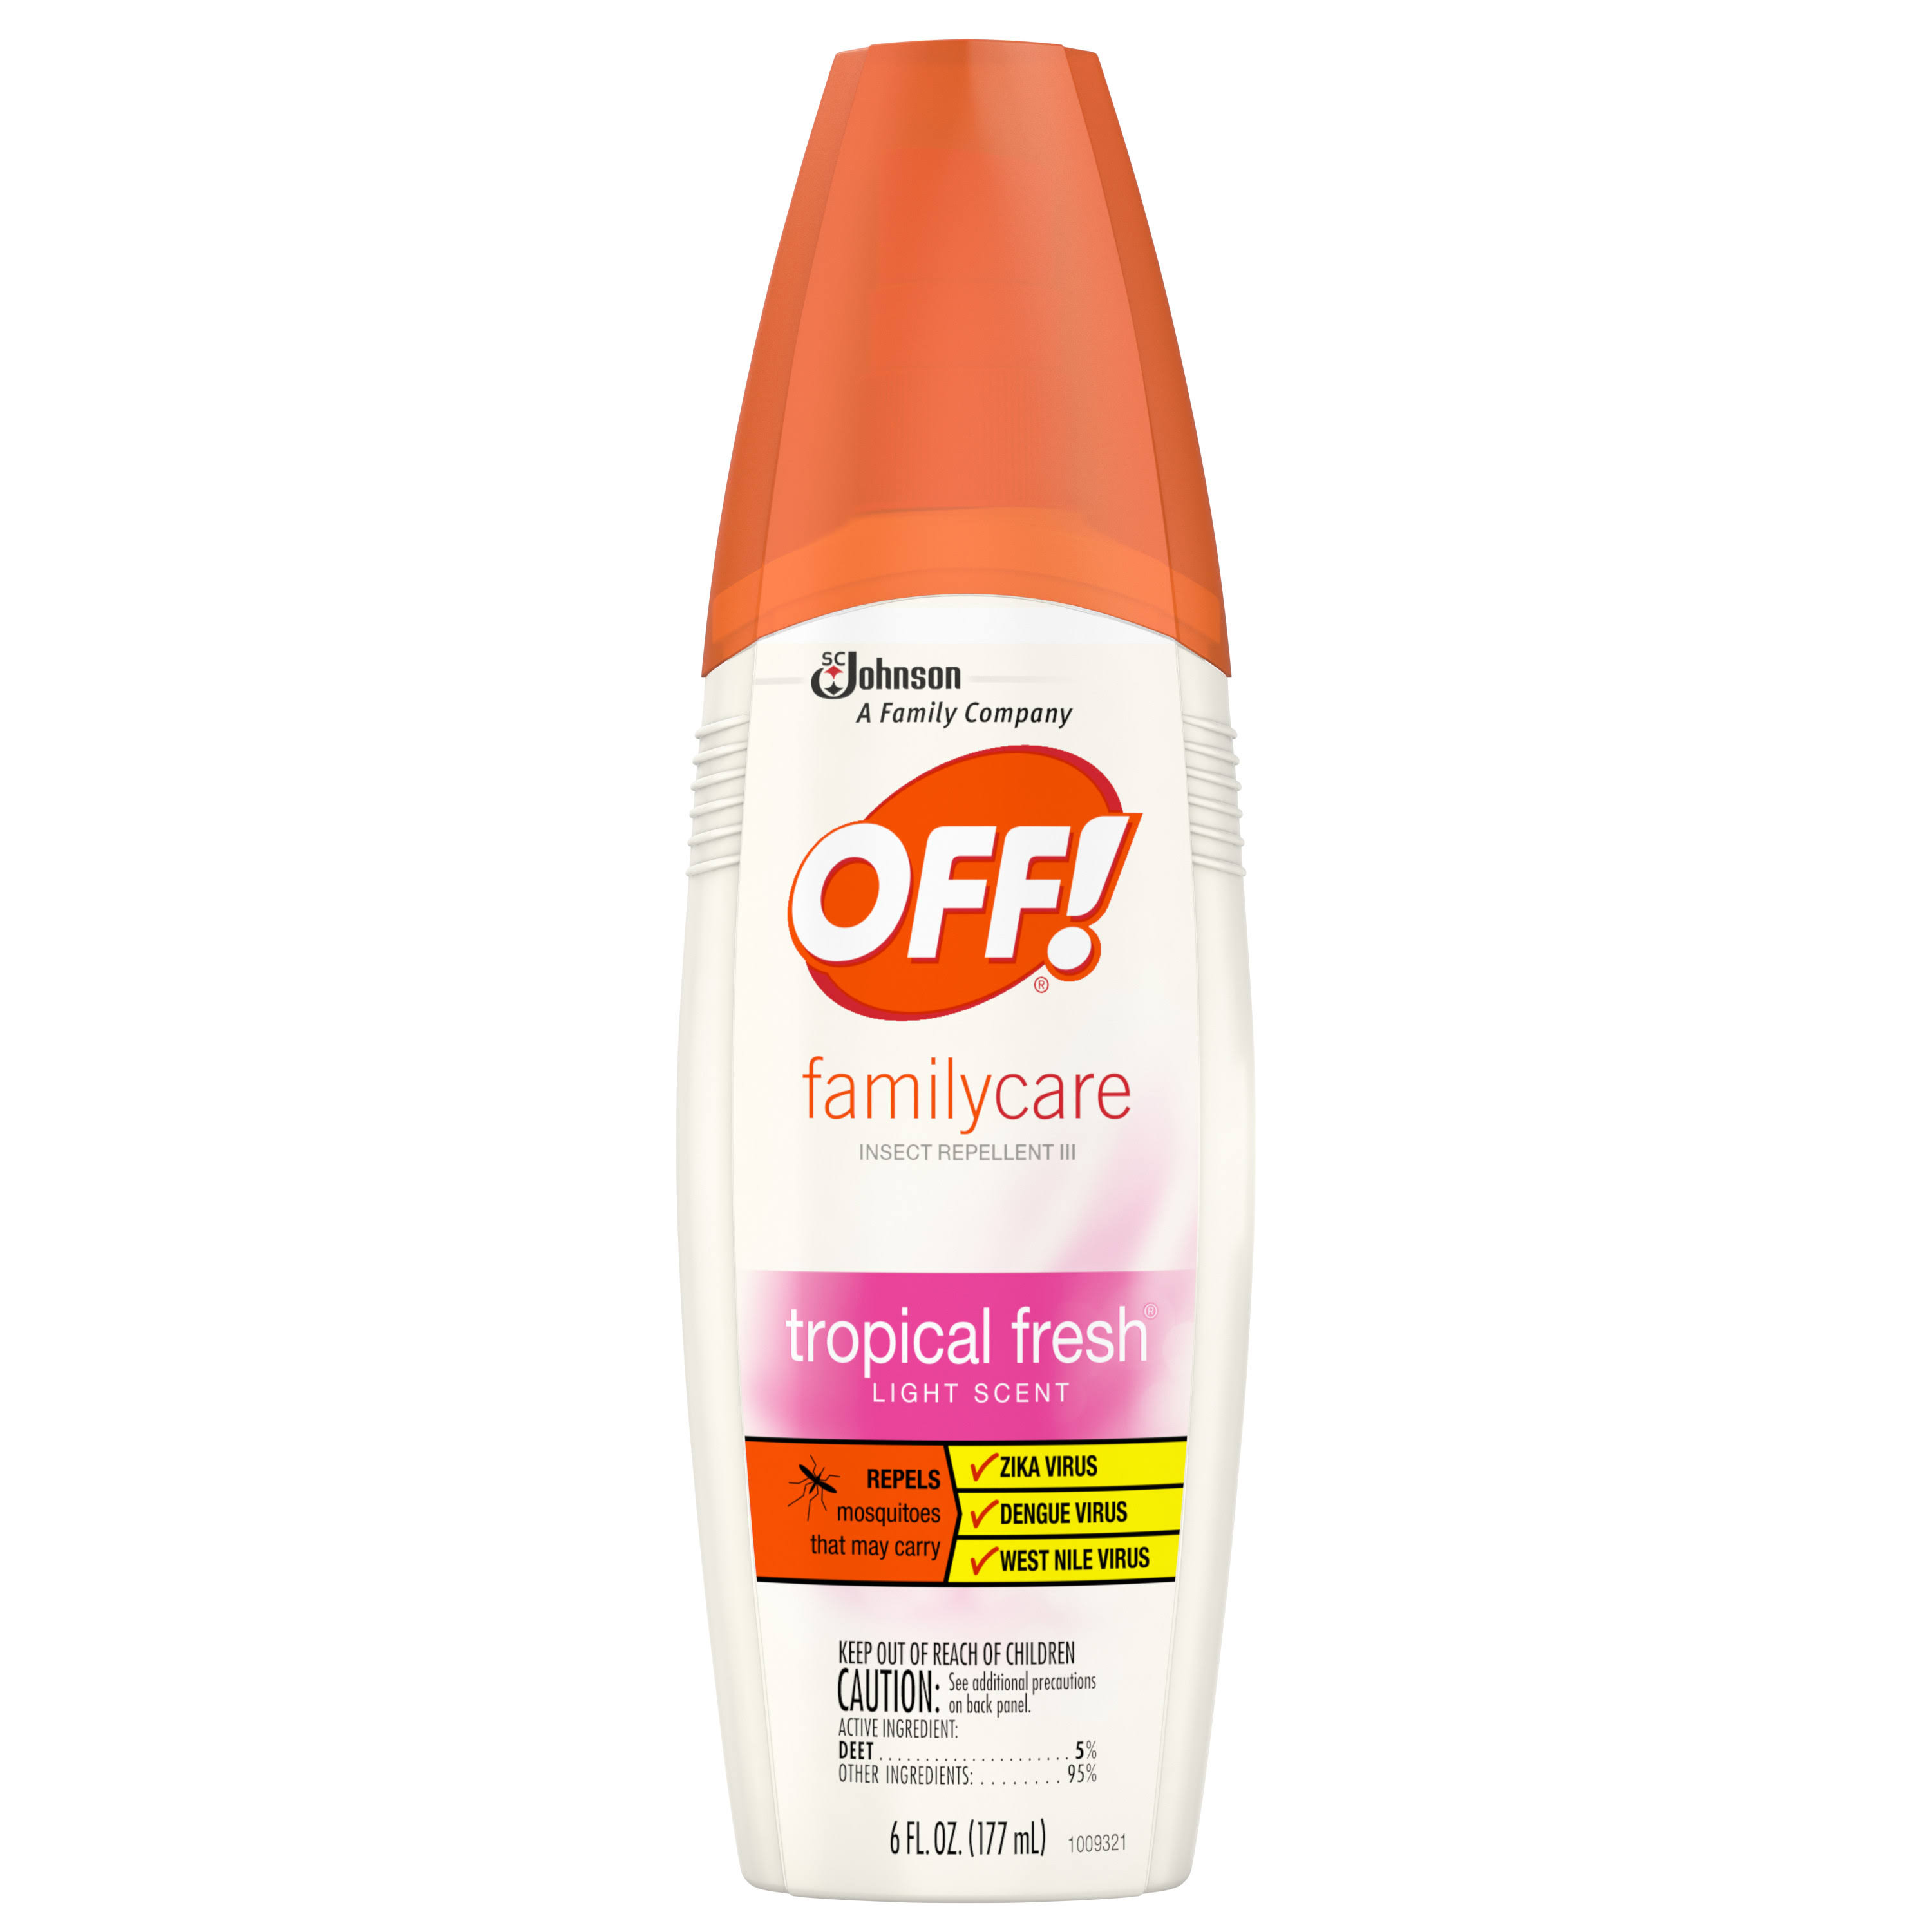 Off! Familycare Tropical Fresh Light Scent Insect Repellent Spray - 6oz